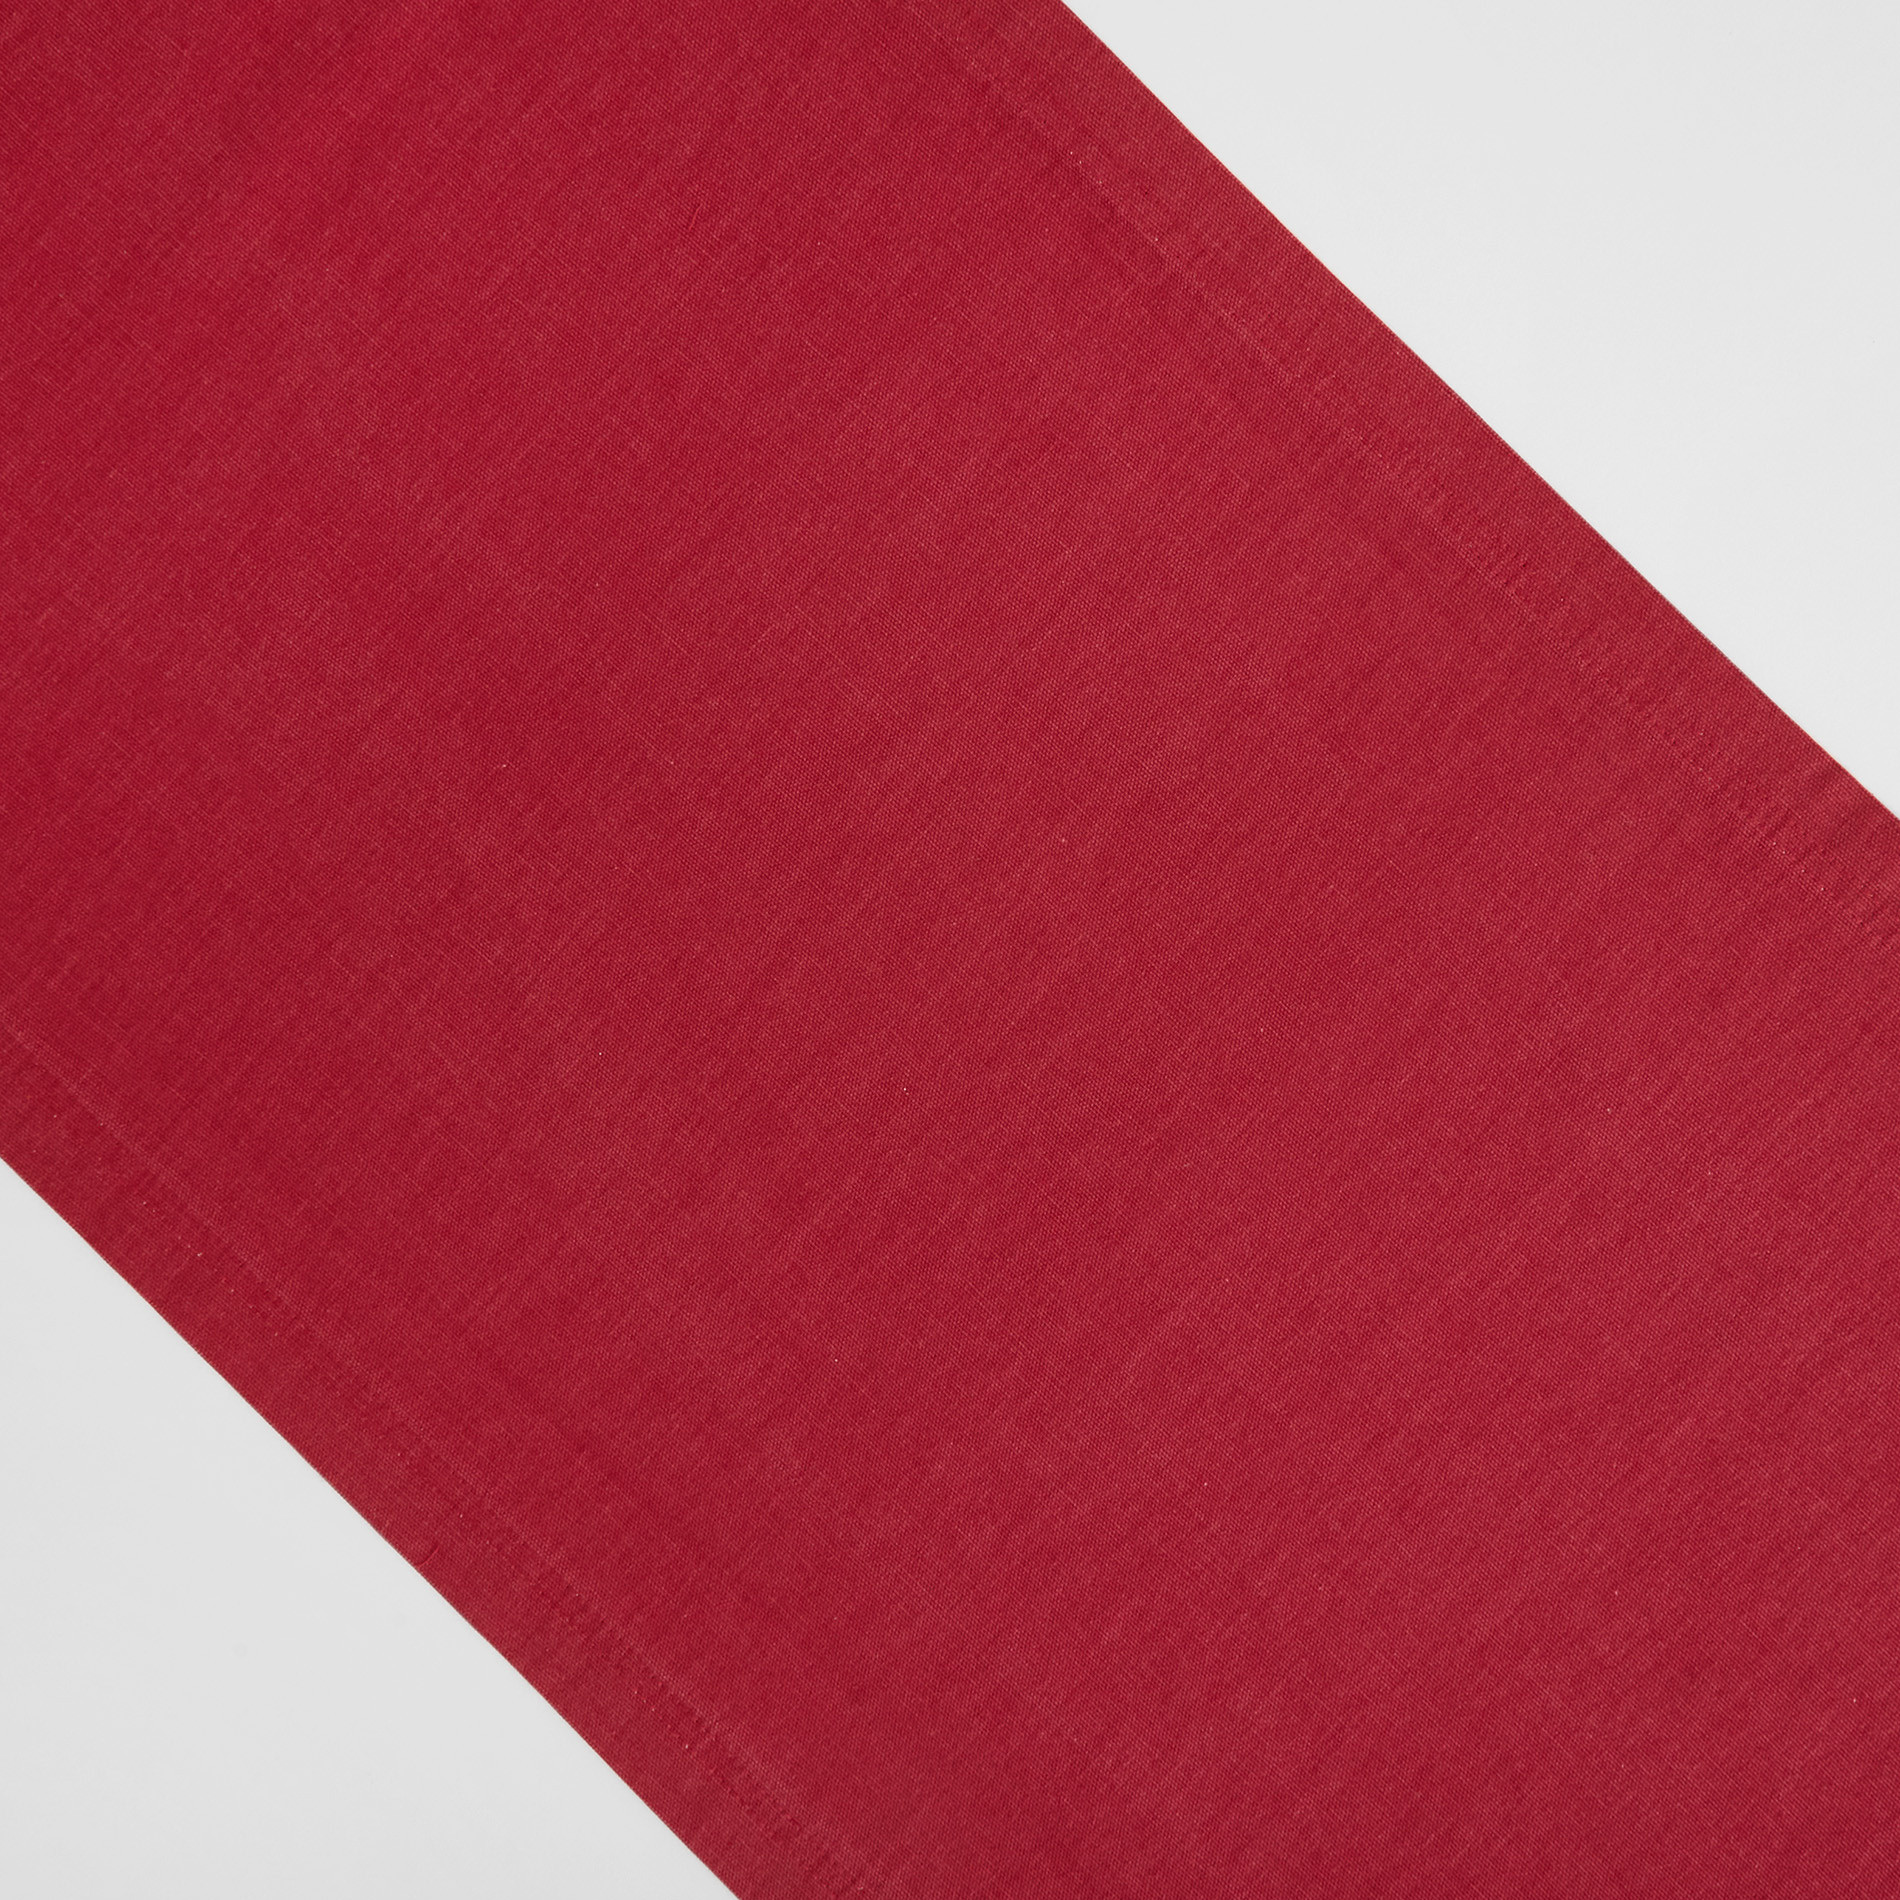 Runner puro cotone garment washed tinta unita, Rosso scuro, large image number 0